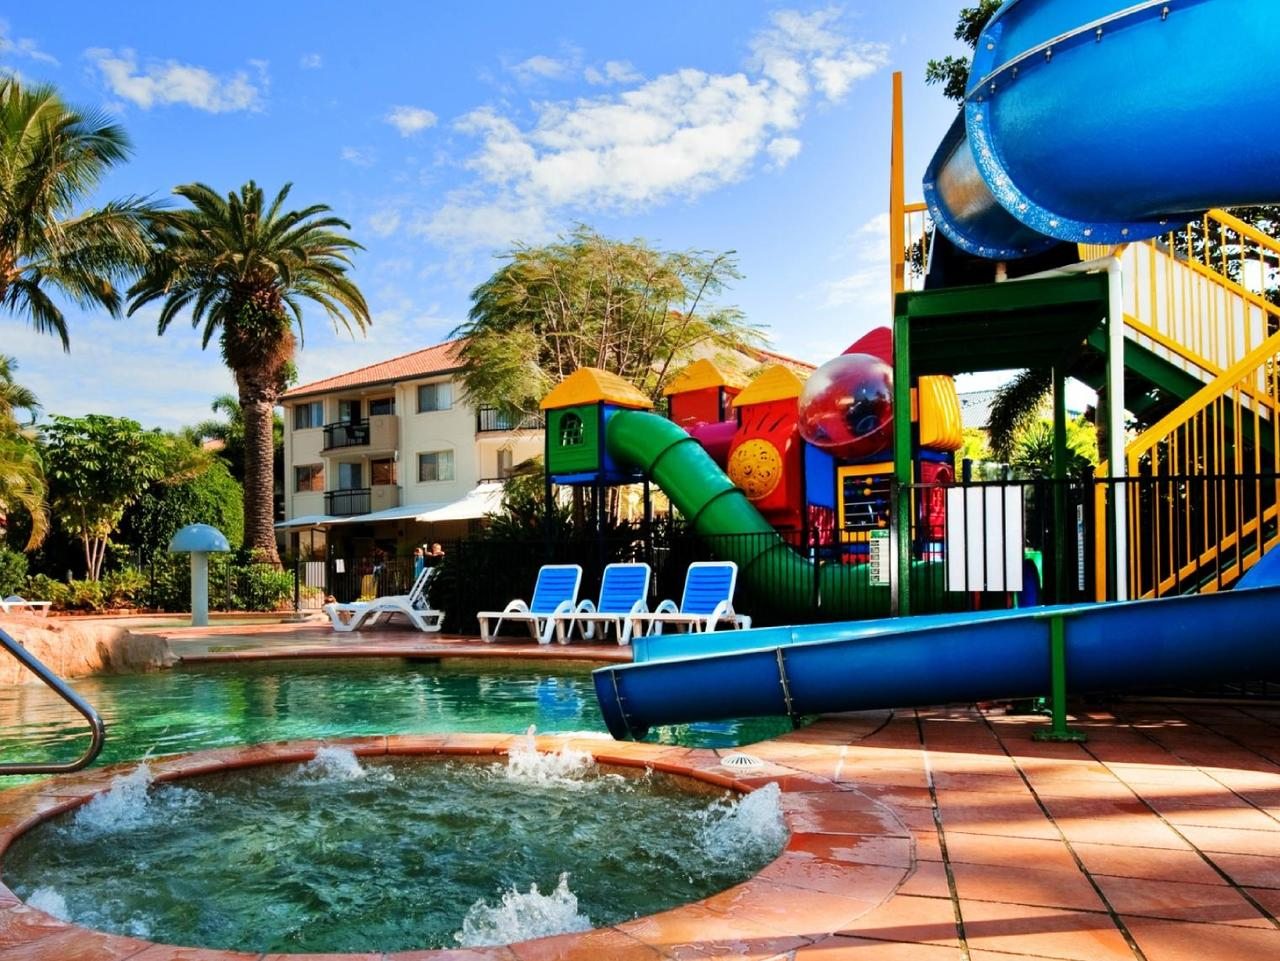 Kids are spoiled for choice with pool fun at Turtle Beach Resort.